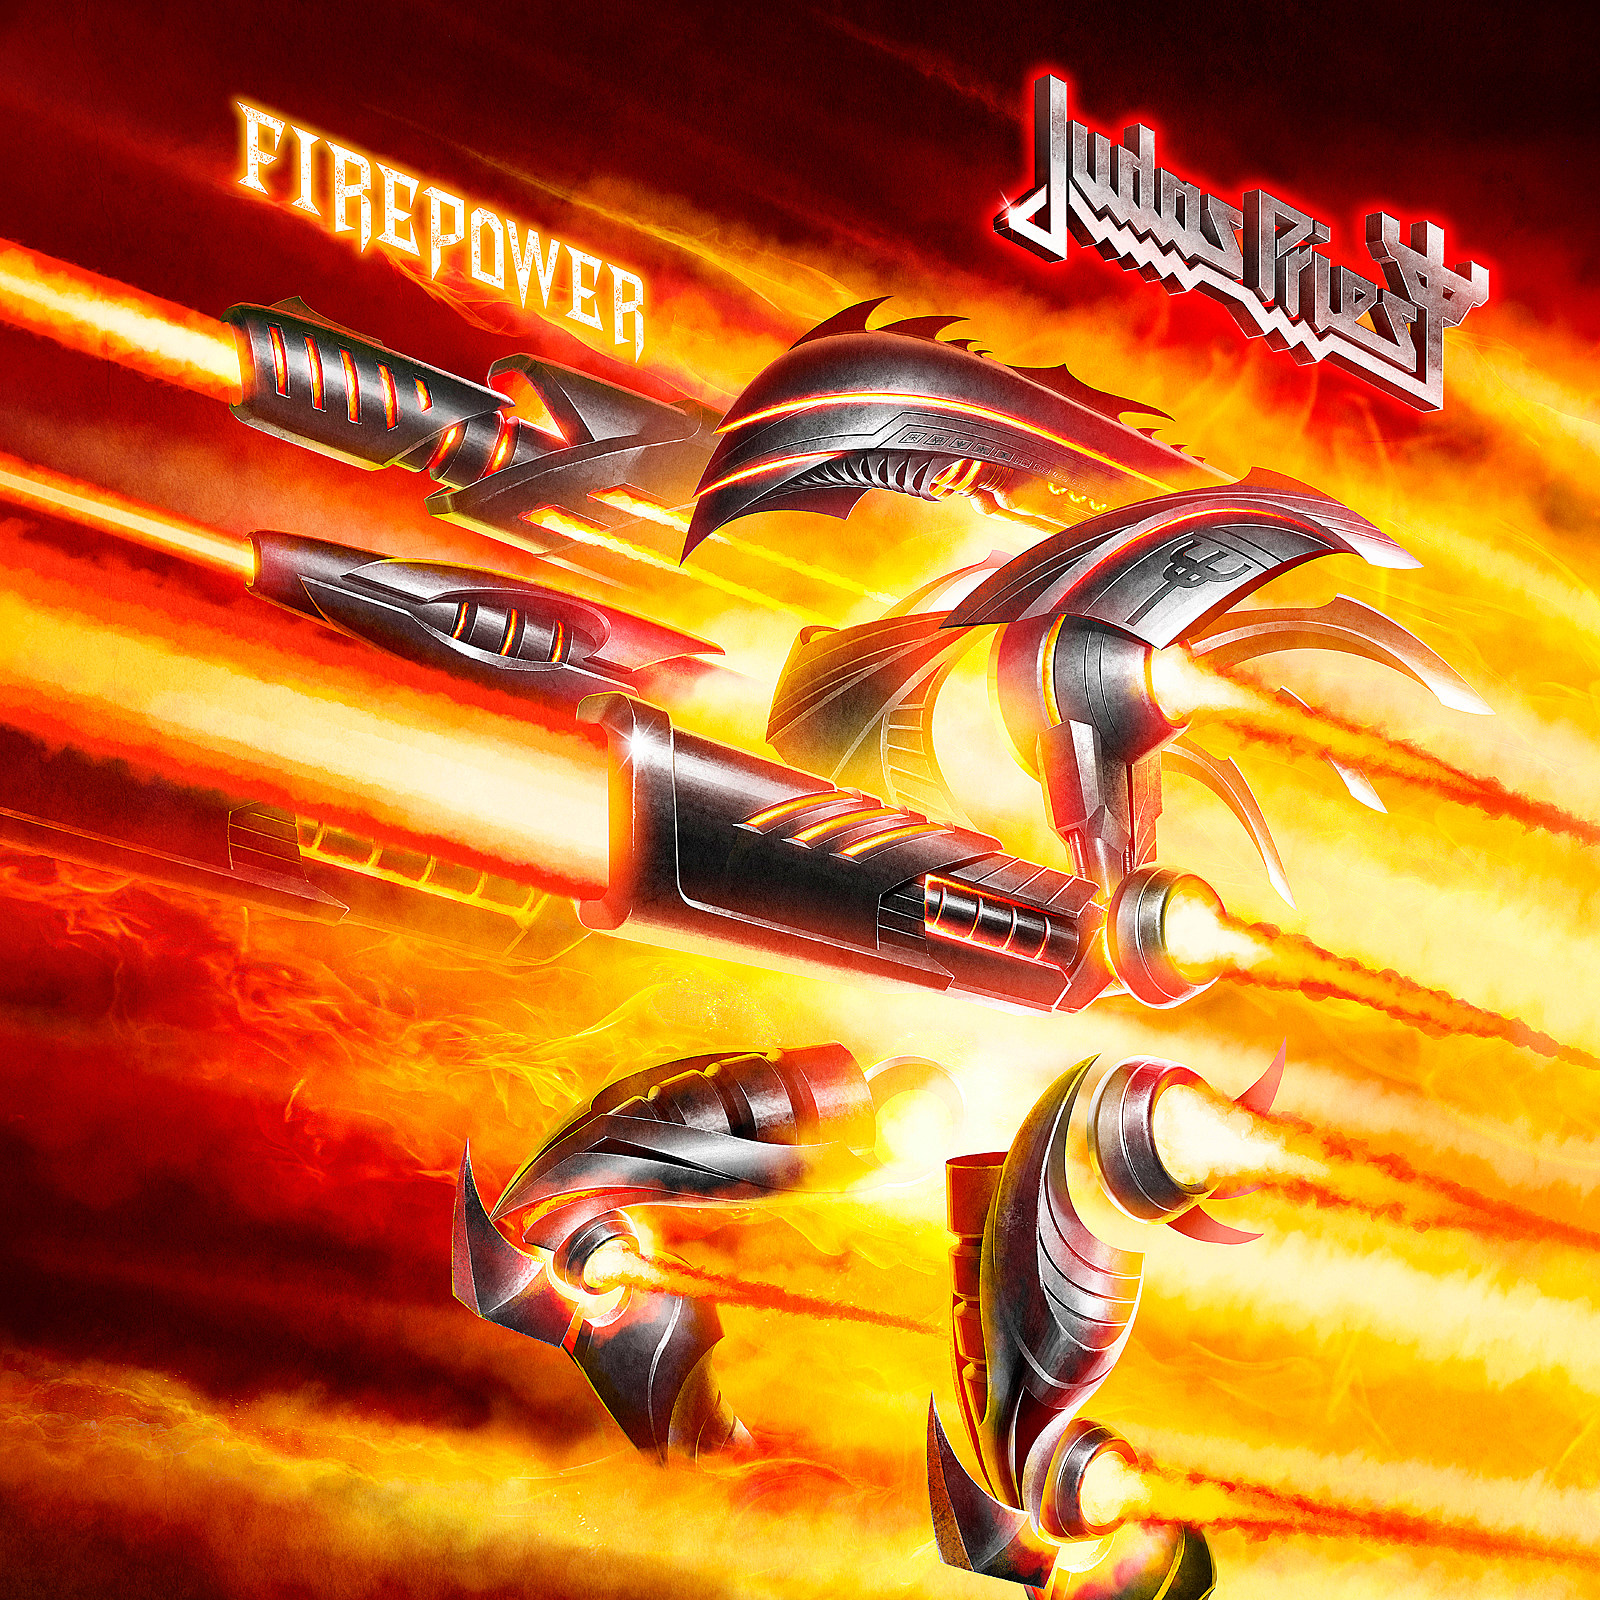 judas priest firepower Top 25 Metal + Hard Rock Albums of 2018